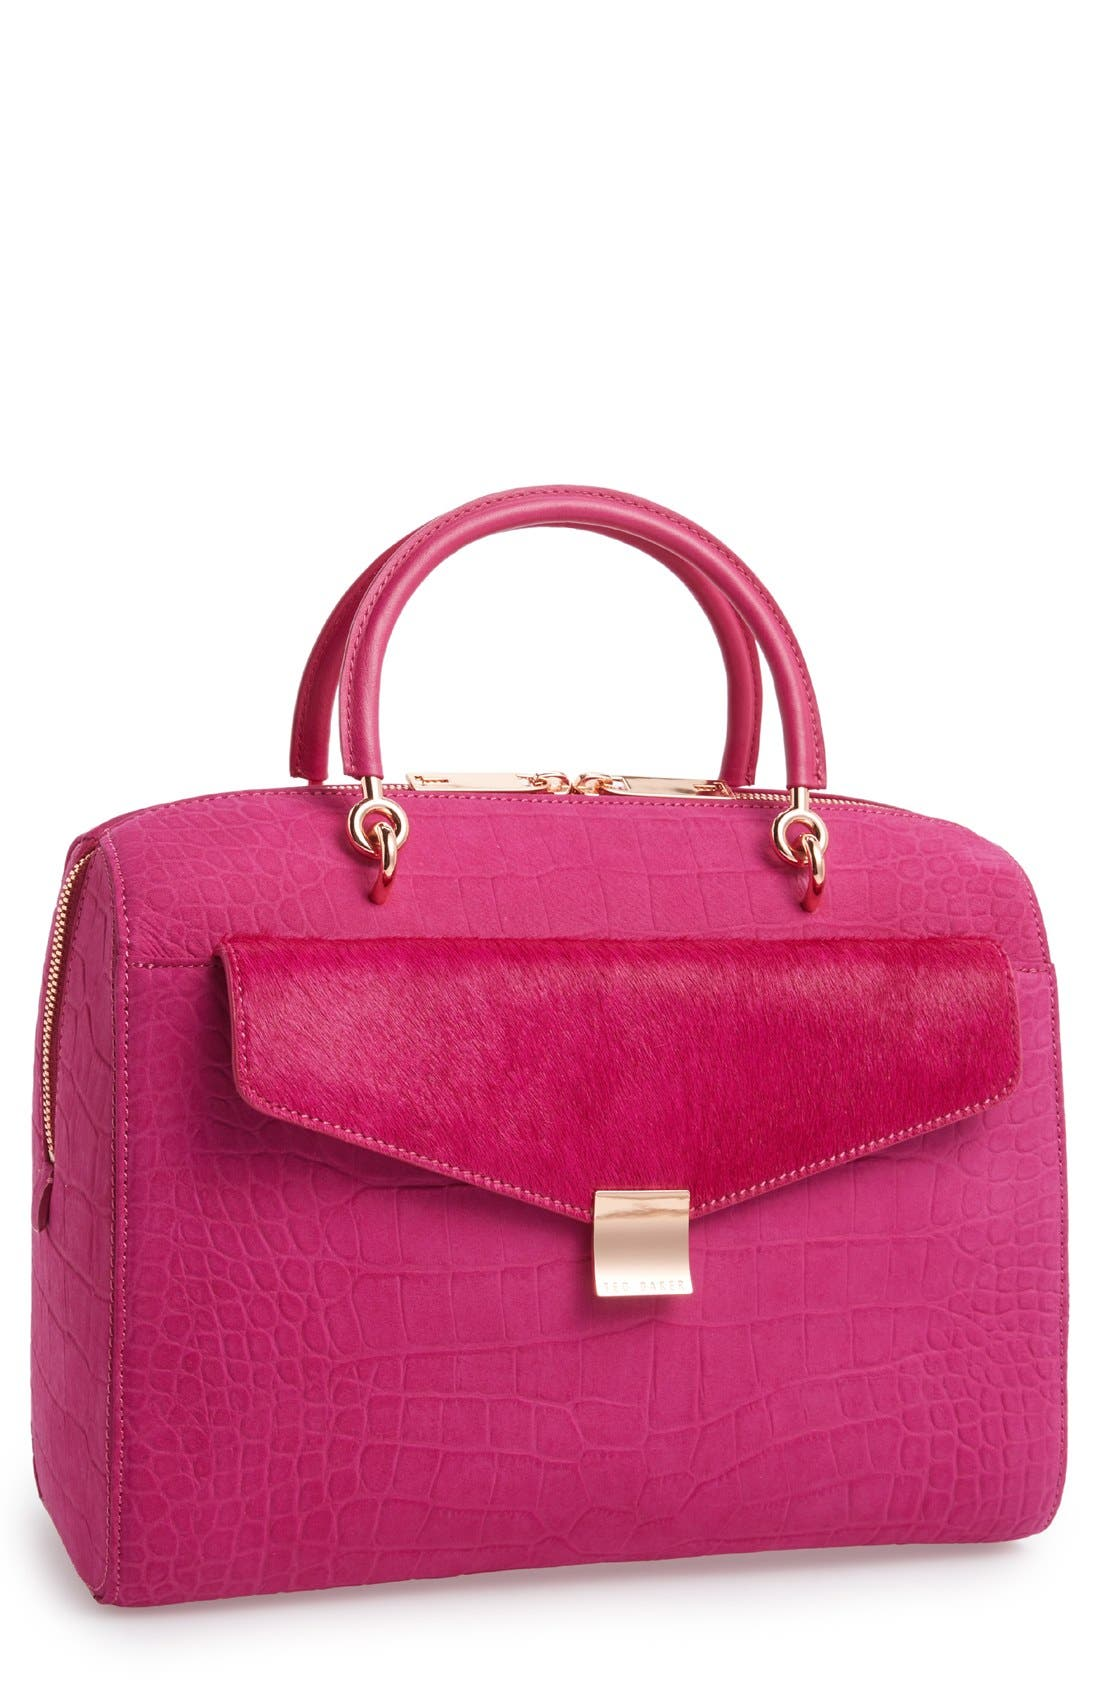 Main Image - Ted Baker London 'Alexia' Removable Clutch Embossed Bowler Bag